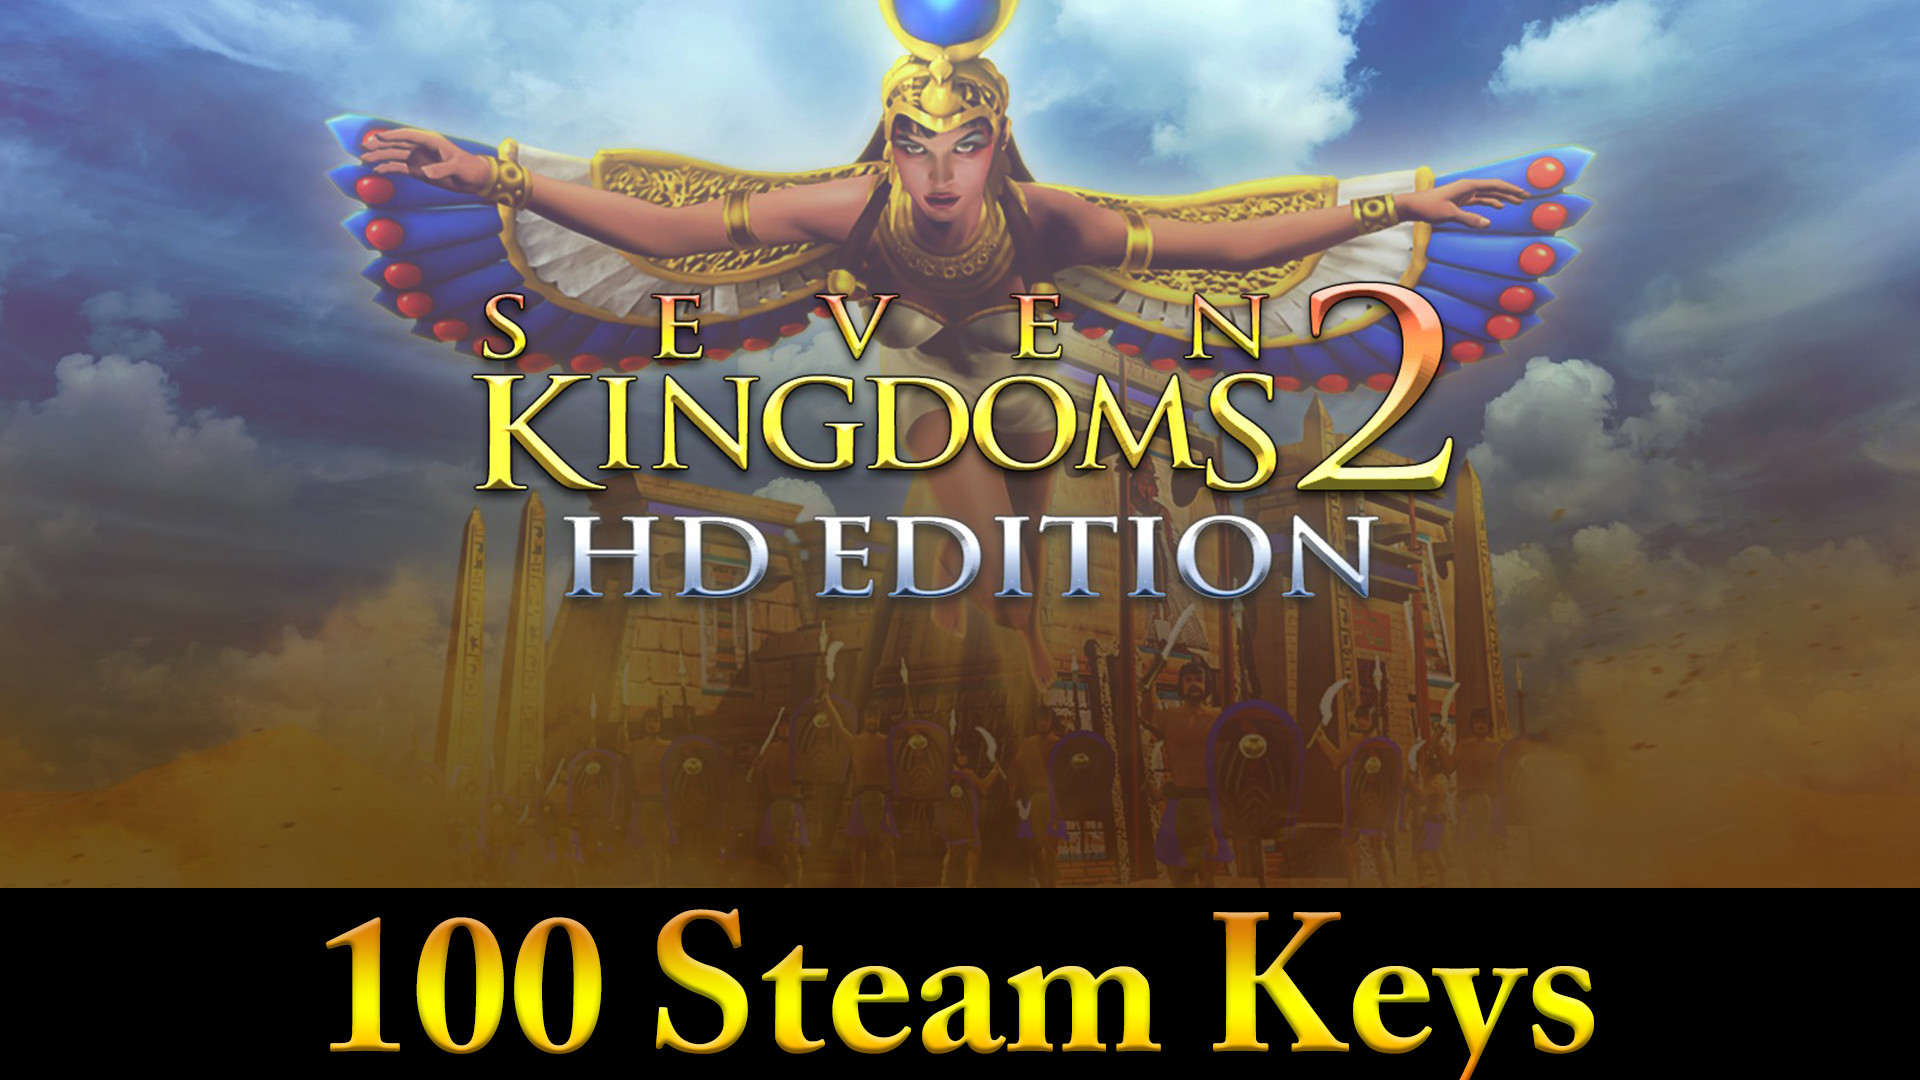 *Ready Seven Kingdoms 2 HD Gamers Giveaway